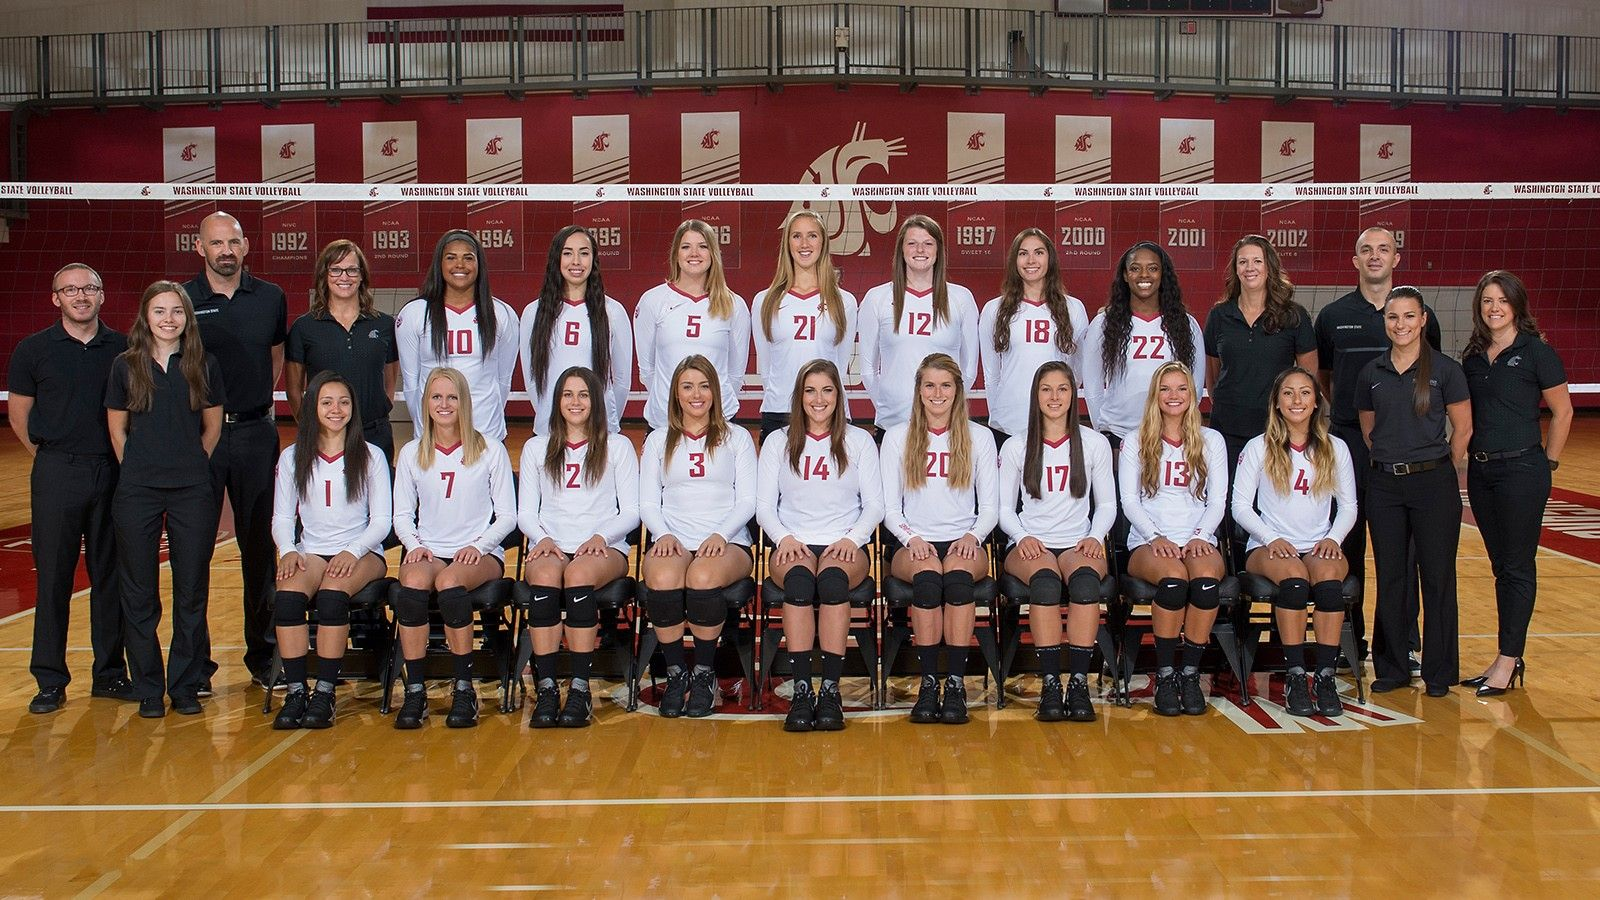 2016 Women S Volleyball Roster Wsucougars Com Washington State University Goruntuler Ile